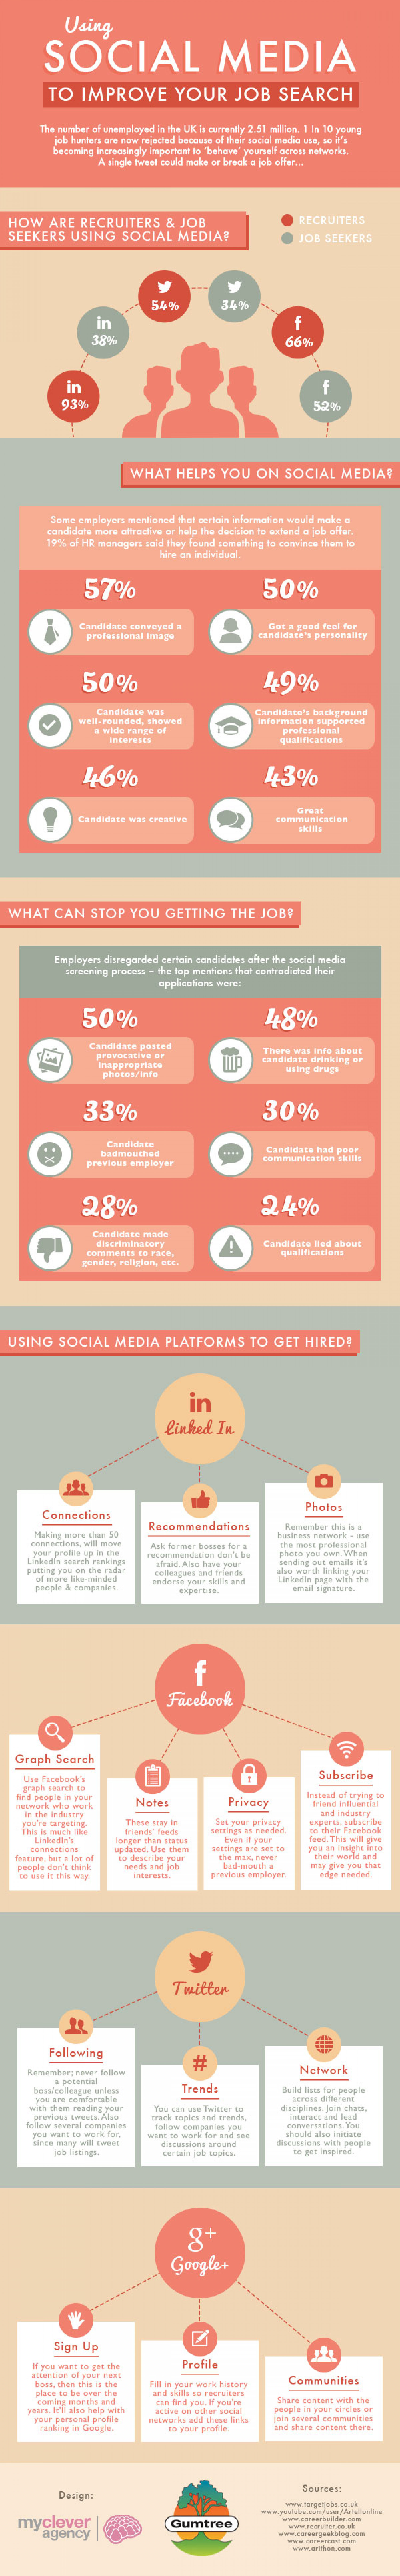 Using Social Media To Improve Your Job Search Infographic